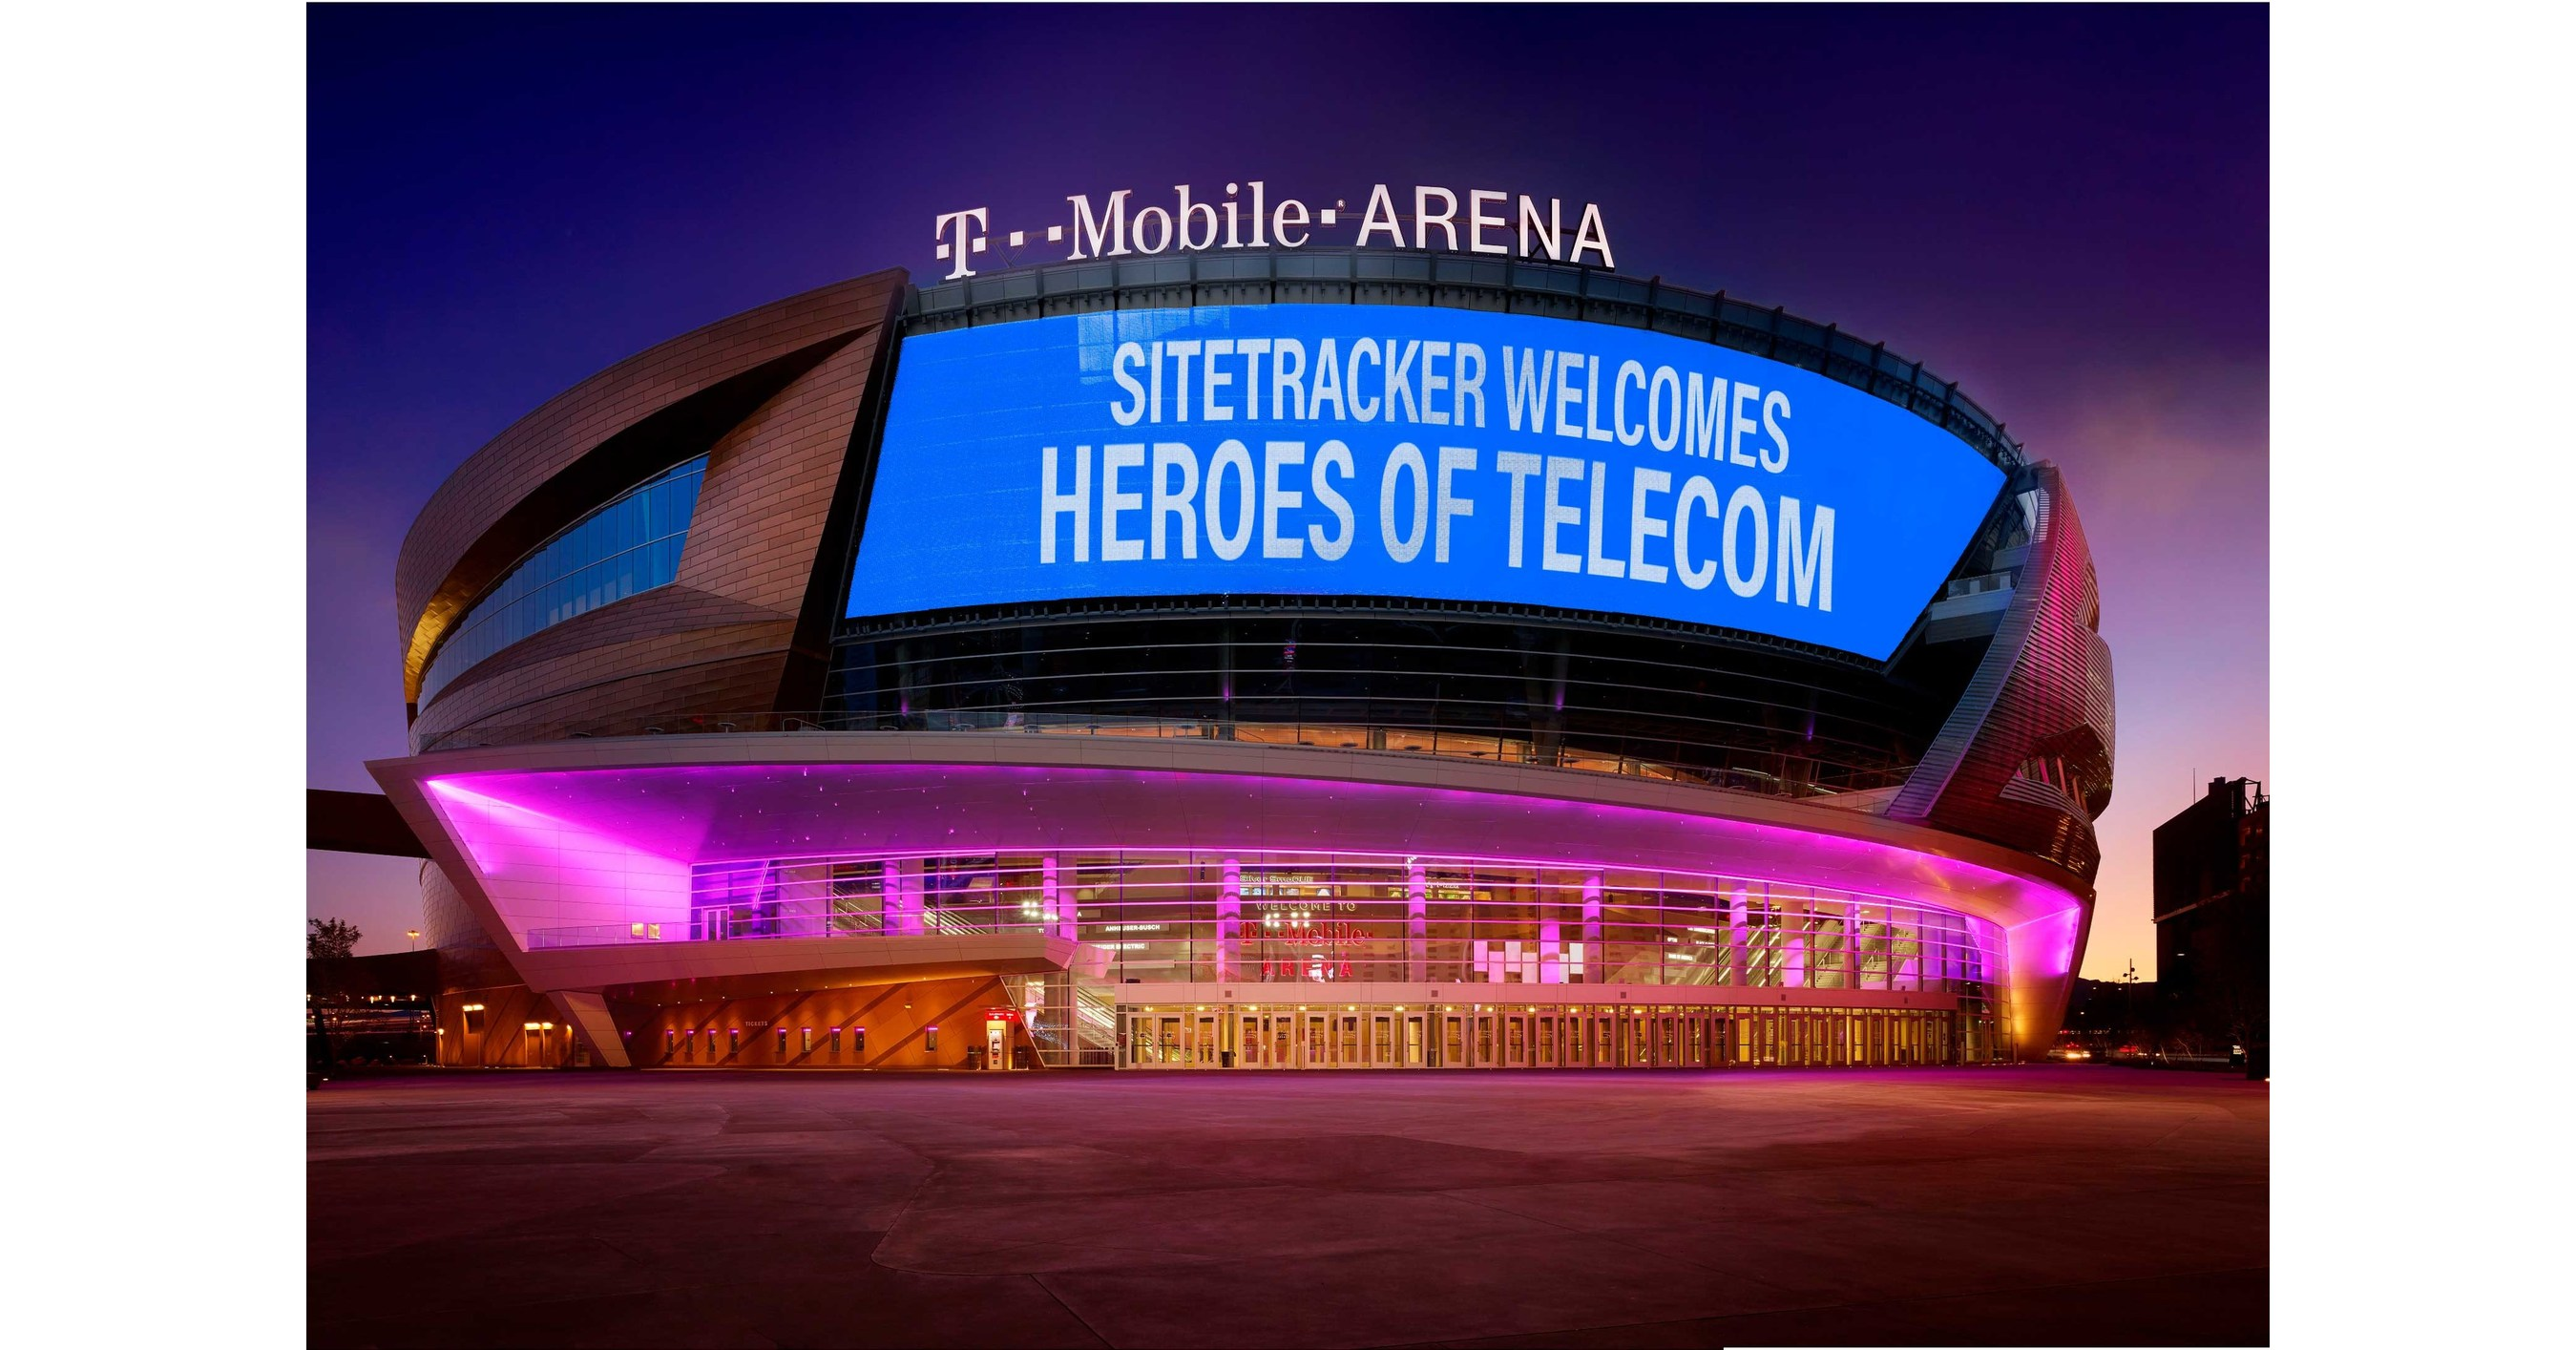 Leaf Honored at Heroes of Telecom Awards Event Nov 20th